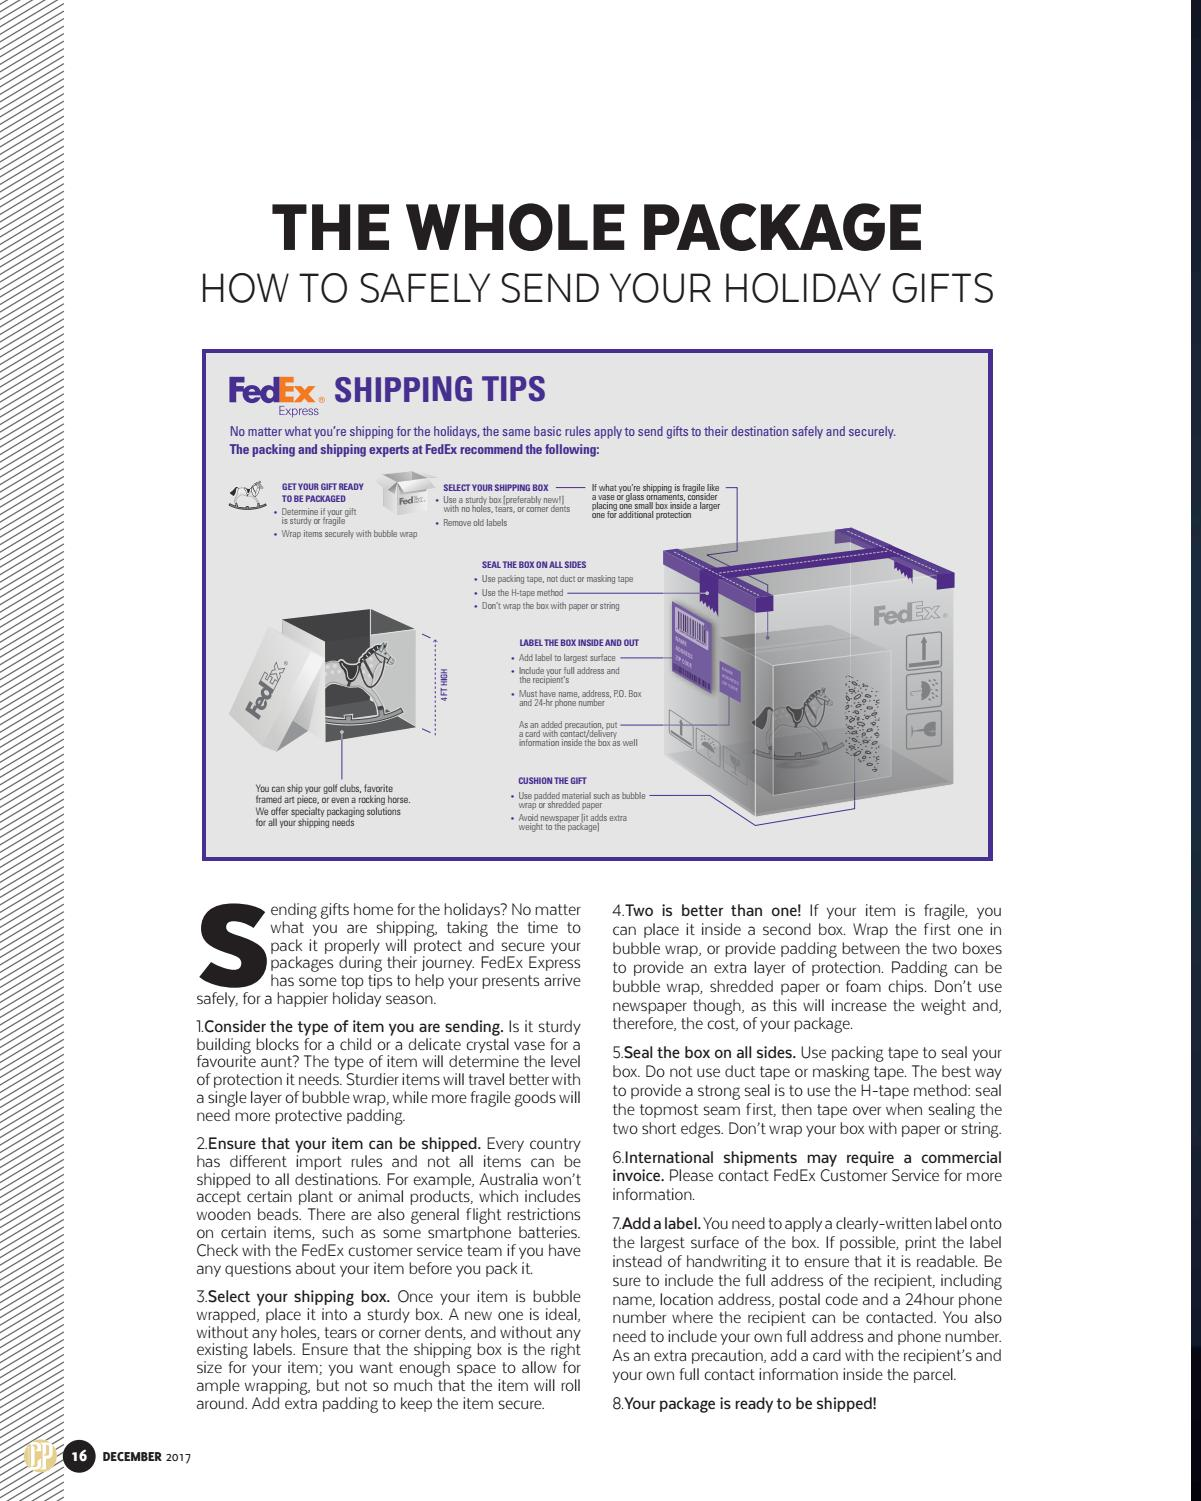 Fedex Express Phone Number